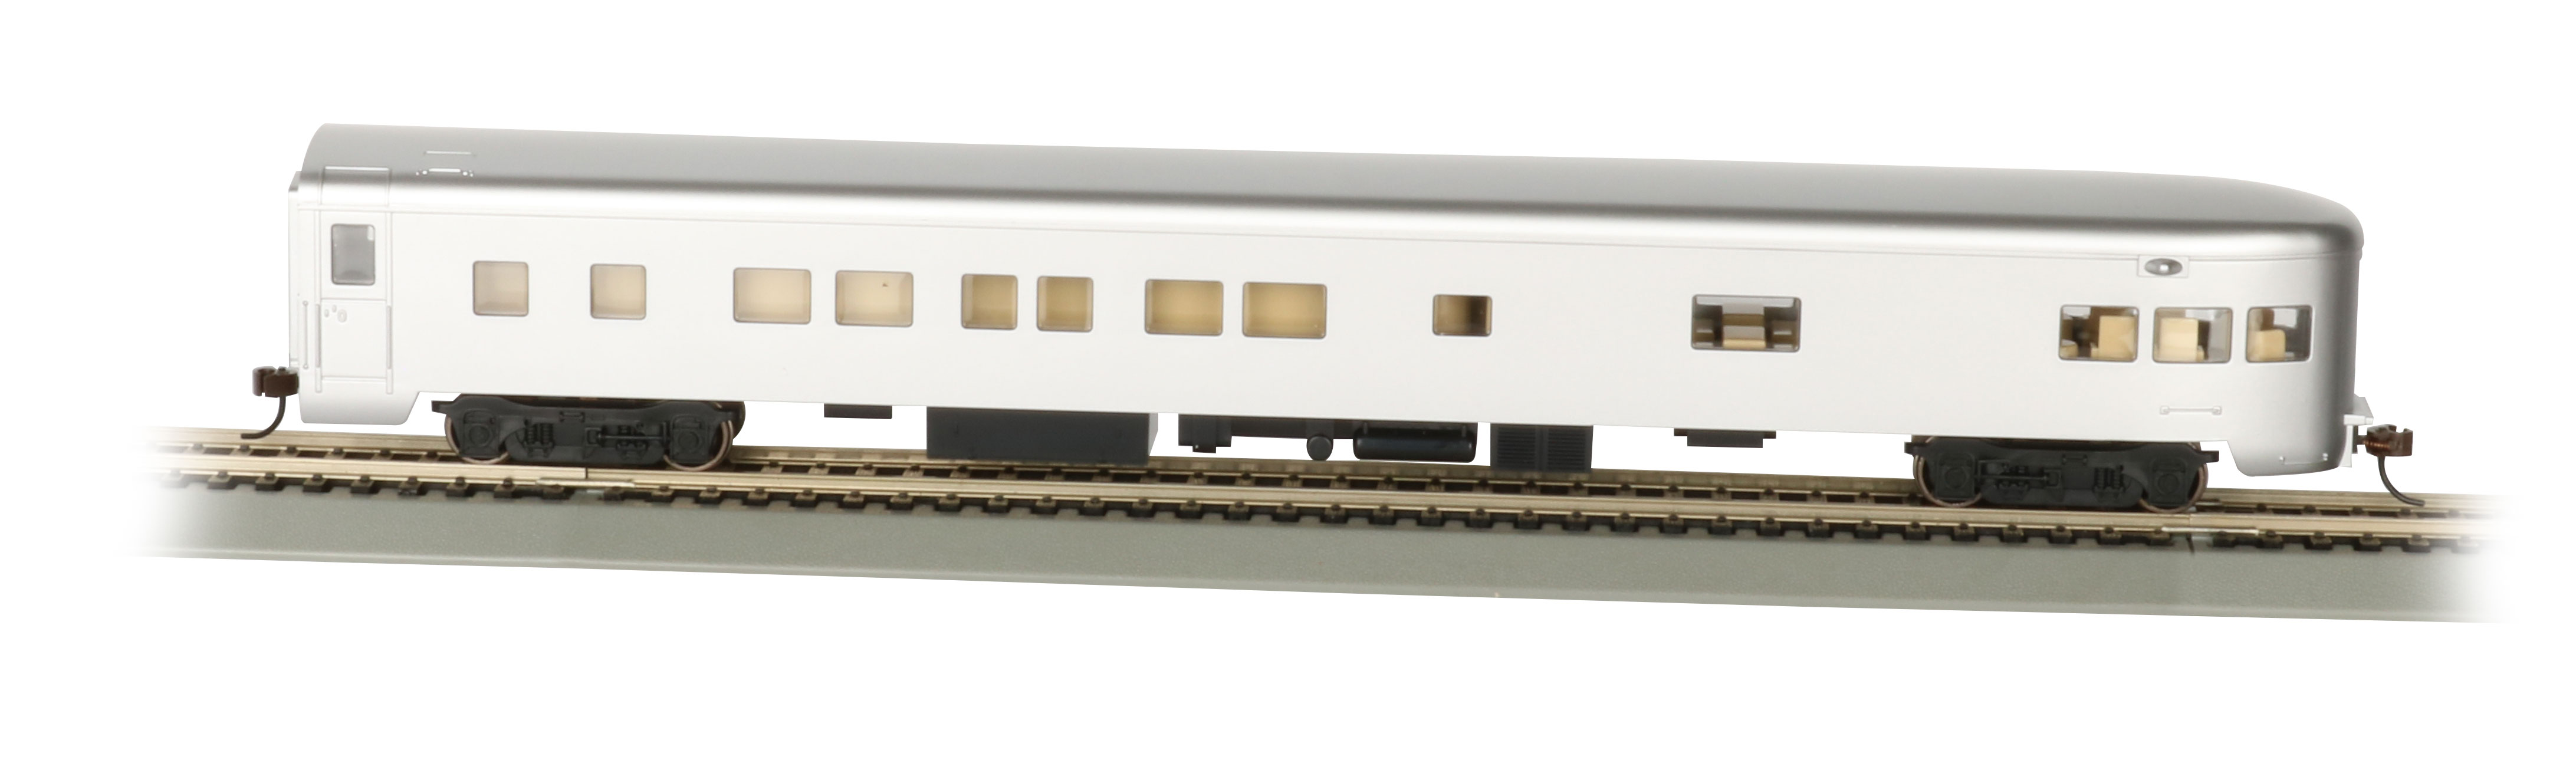 Bachmann 14308 HO 85' Smooth-Side Observation w/Lights Painted Unlettered Aluminum